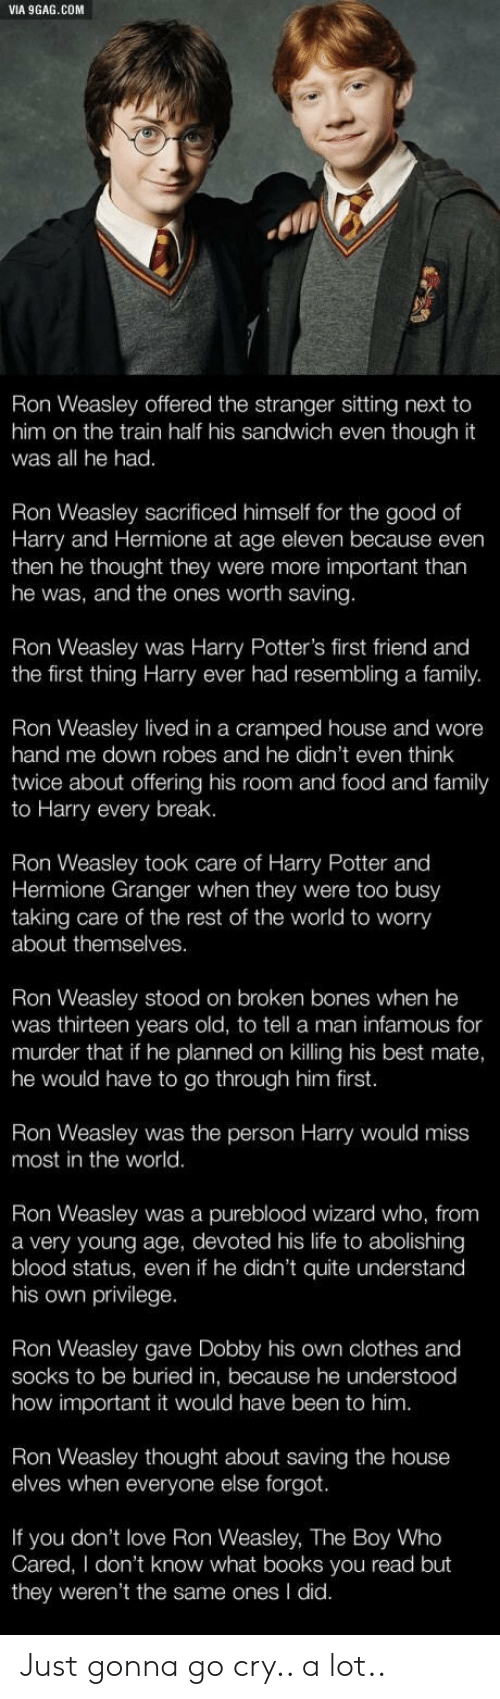 9gag, Bones, and Books: VIA 9GAG.COM  Ron Weasley offered the stranger sitting next to  him on the train half his sandwich even though it  was all he had.  Ron Weasley sacrificed himself for the good of  Harry and Hermione at age eleven because even  then he thought they were more important tharn  he was, and the ones worth saving.  Ron Weasley was Harry Potter's first friend and  the first thing Harry ever had resembling a family.  Weasley lived in a cramped house and wore  hand me down robes and he didn't even think  twice about offering his room and food and family  to Harry every break.  Ron Weasley took care of Harry Potter and  Hermione Granger when they were too busy  taking care of the rest of the world to worry  about themselves.  Ron Weasley stood on broken bones when he  was thirteen years old, to tell a man infamous for  murder that if he planned on killing his best mate,  he would have to go through him first.  Ron Weasley was the person Harry would miss  most in the world.  Ron Weasley was a pureblood wizard who, from  a very young age, devoted his life to abolishing  blood status, even if he didn't quite understand  his own privilege.  Ron Weasley gave Dobby his own clothes and  socks to be buried in, because he understood  how important it would have been to him  Ron Weasley thought about saving the house  elves when everyone else forgot.  If you don't love Ron Weasley, The Boy Who  Cared, I don't know what books you read but  they weren't the same ones I did. Just gonna go cry.. a lot..